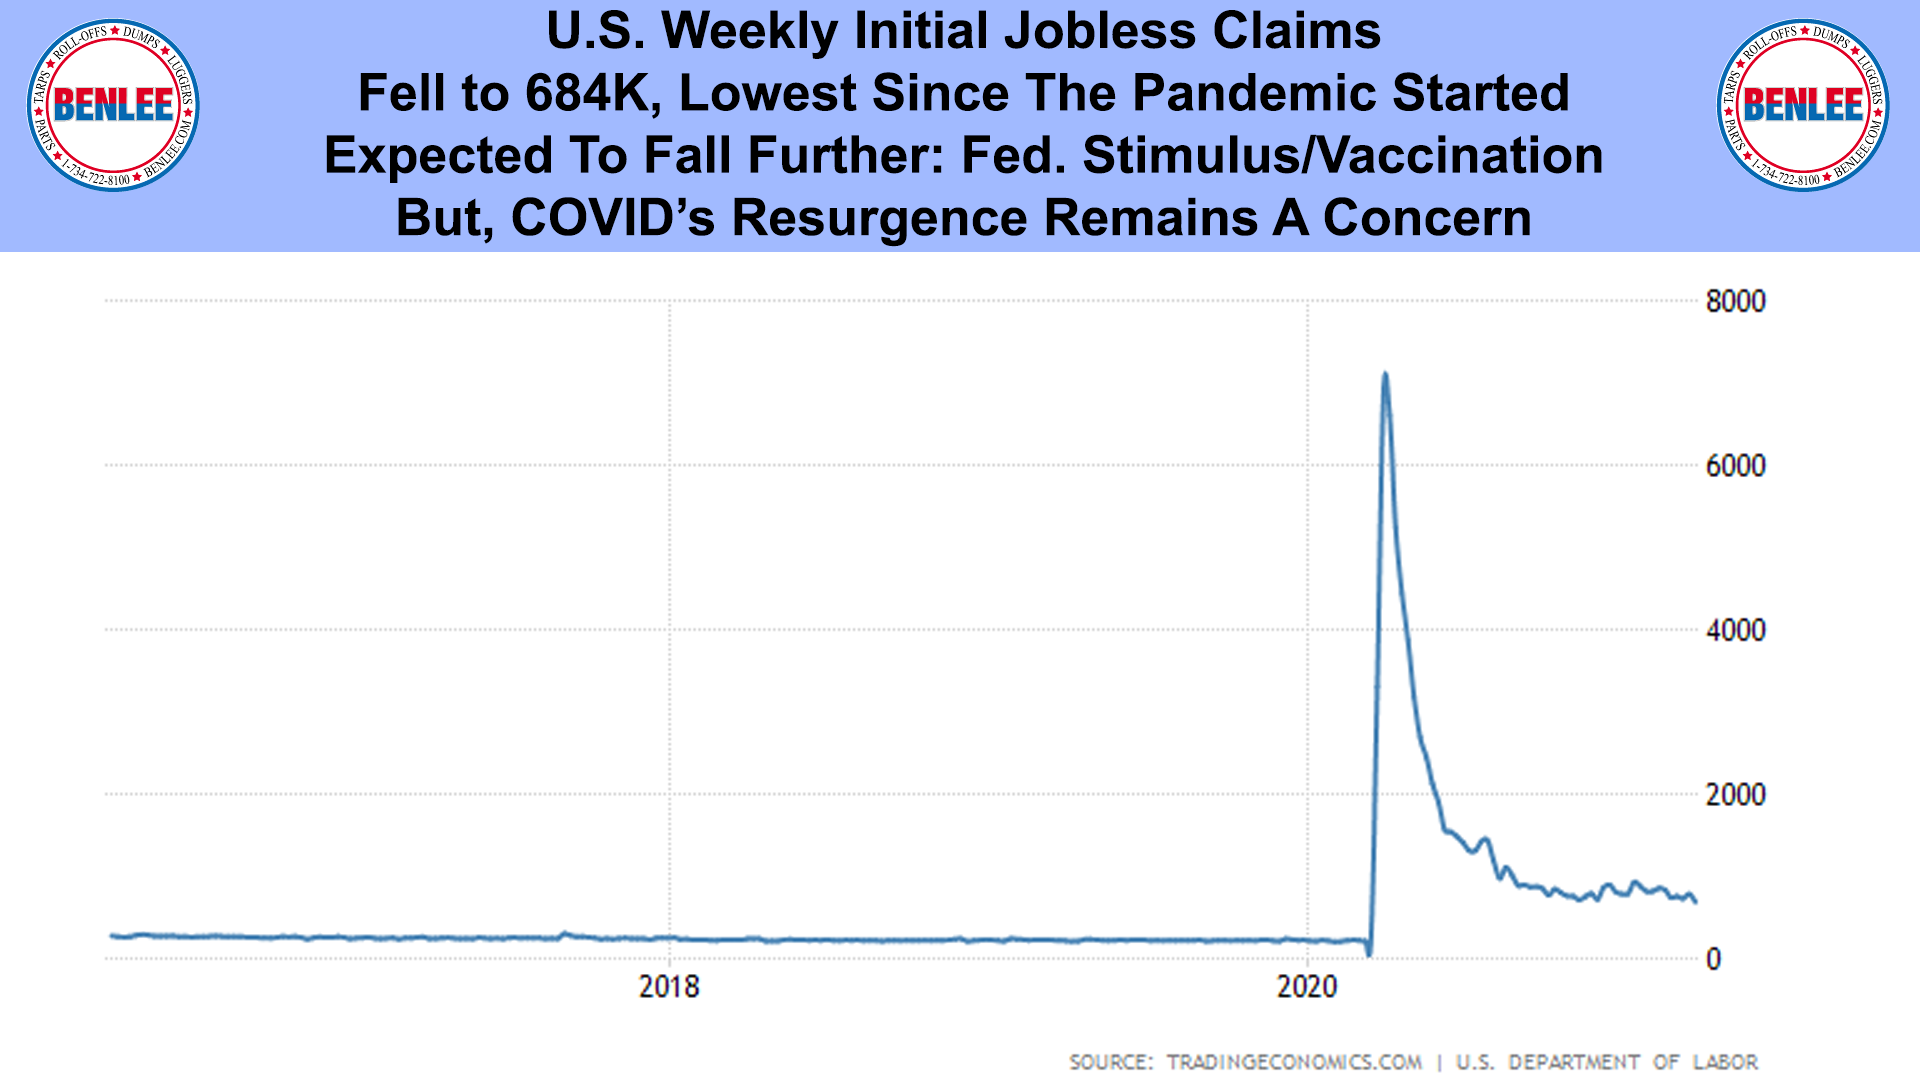 U.S. Weekly Initial Jobless Claims